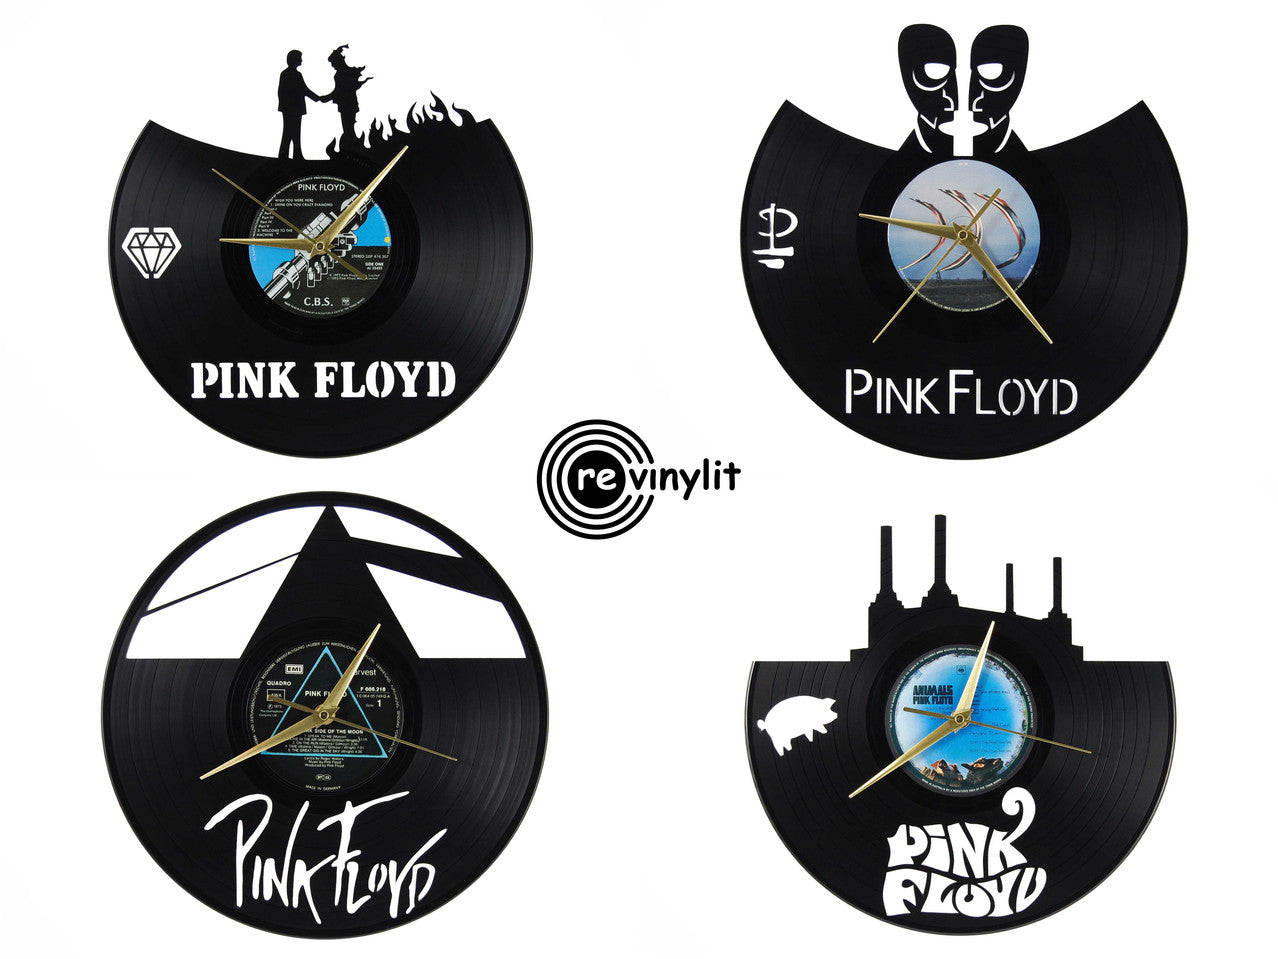 Pink Floyd vinyl clocks